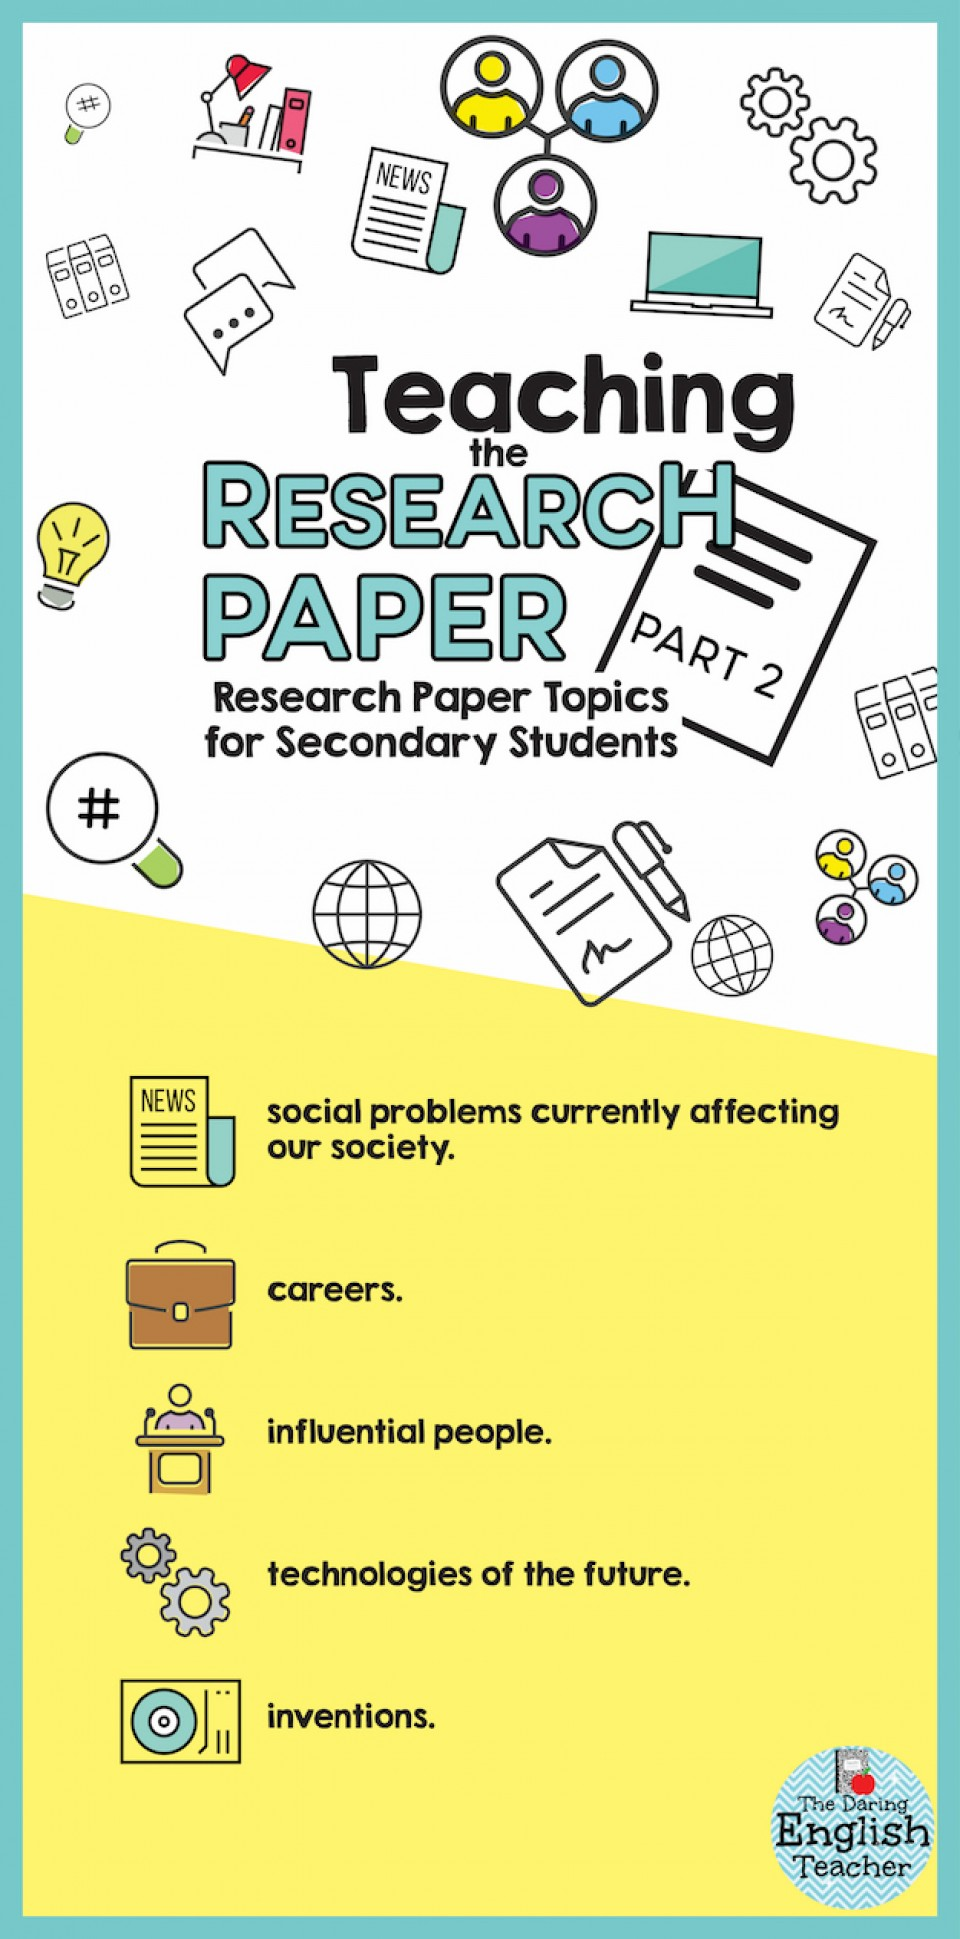 009 Infographic2bp22b2 High School Research Paper Astounding Topics 2017 Science For Students 960